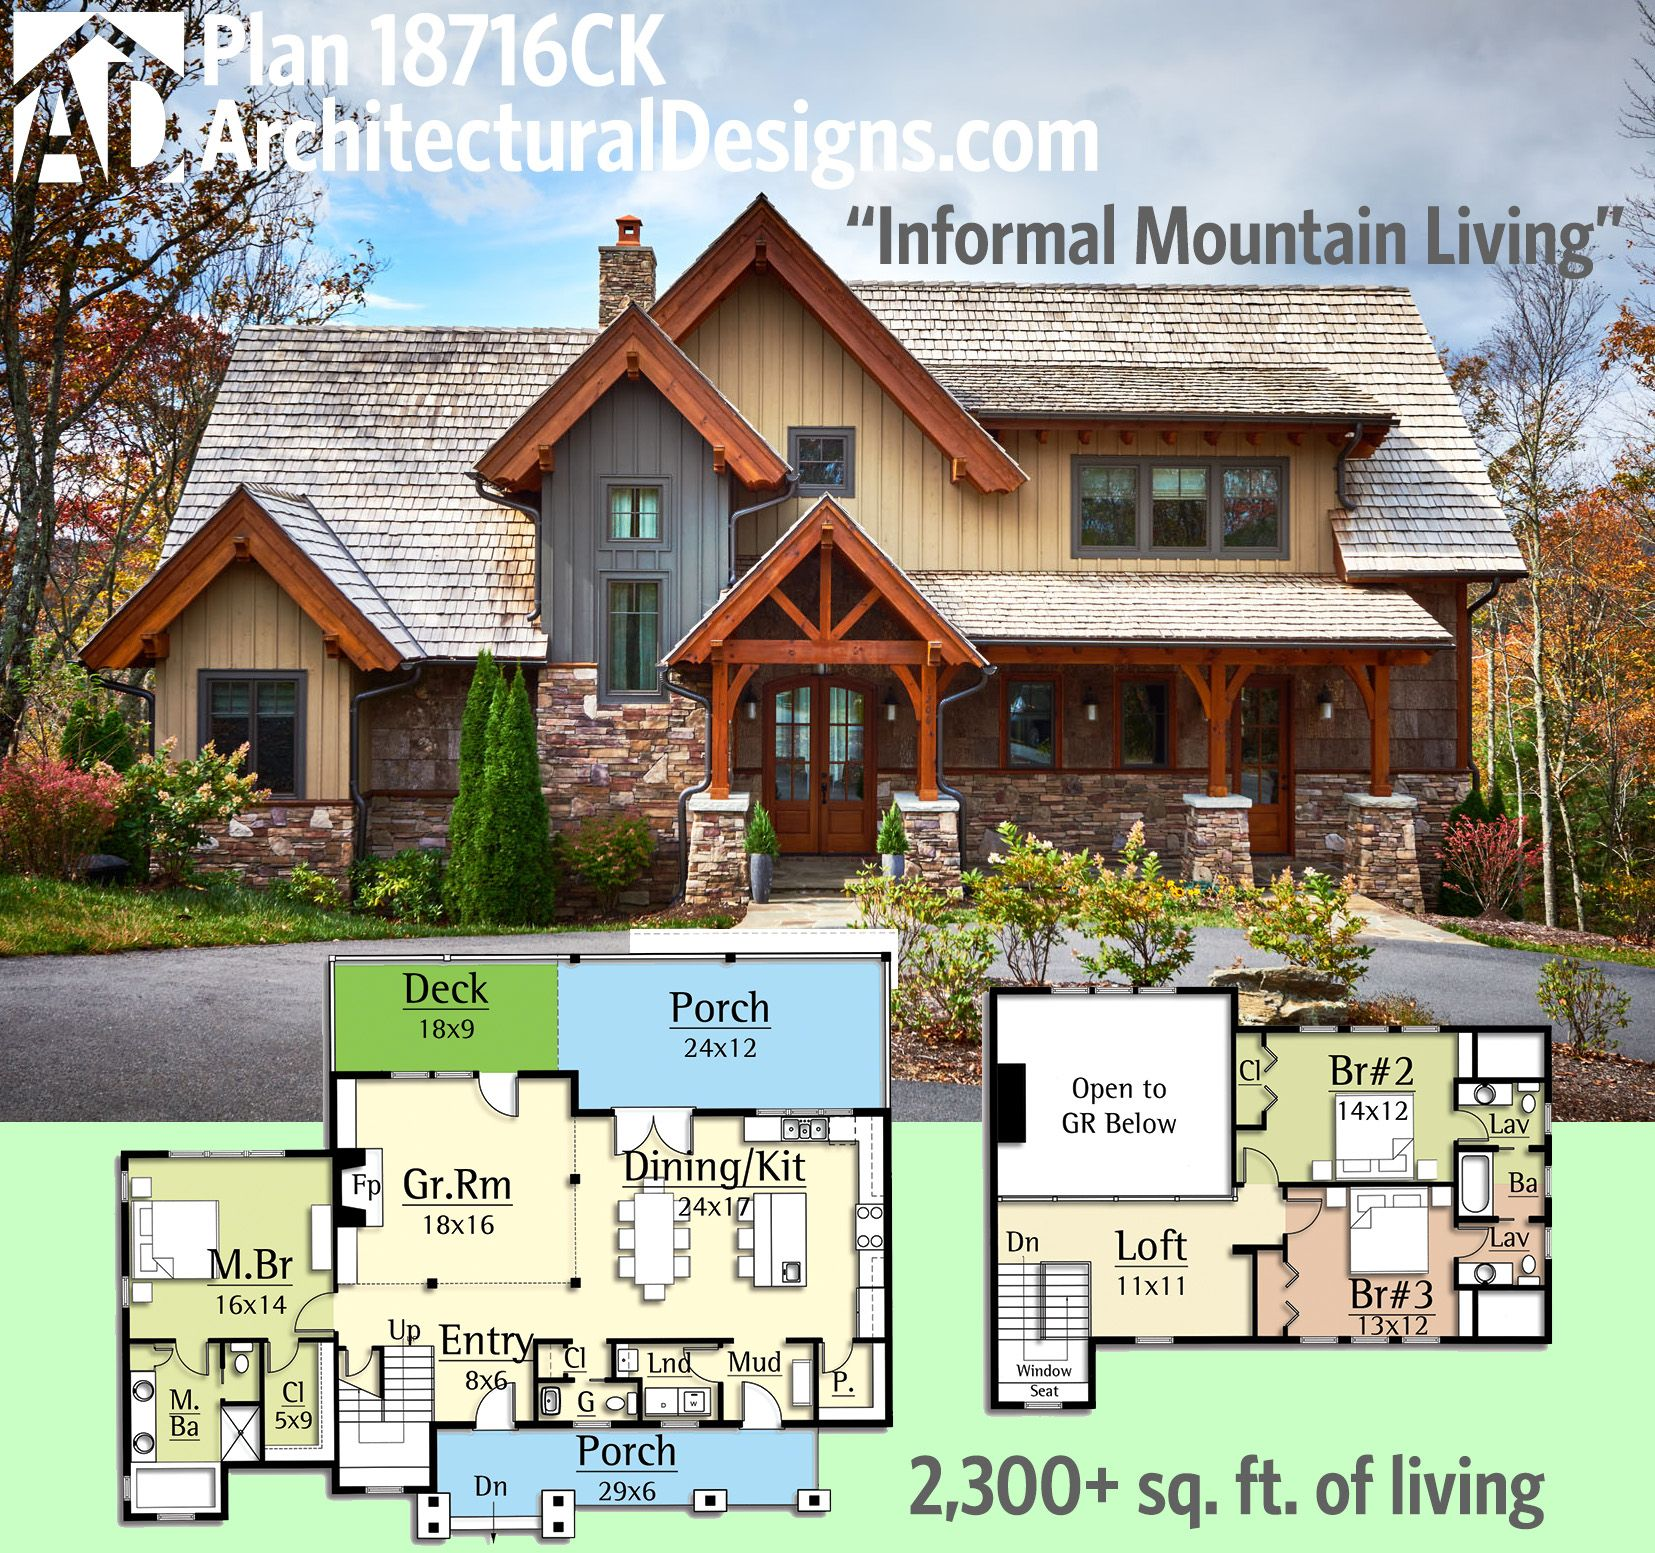 Plan 18716CK: Informal Mountain Living